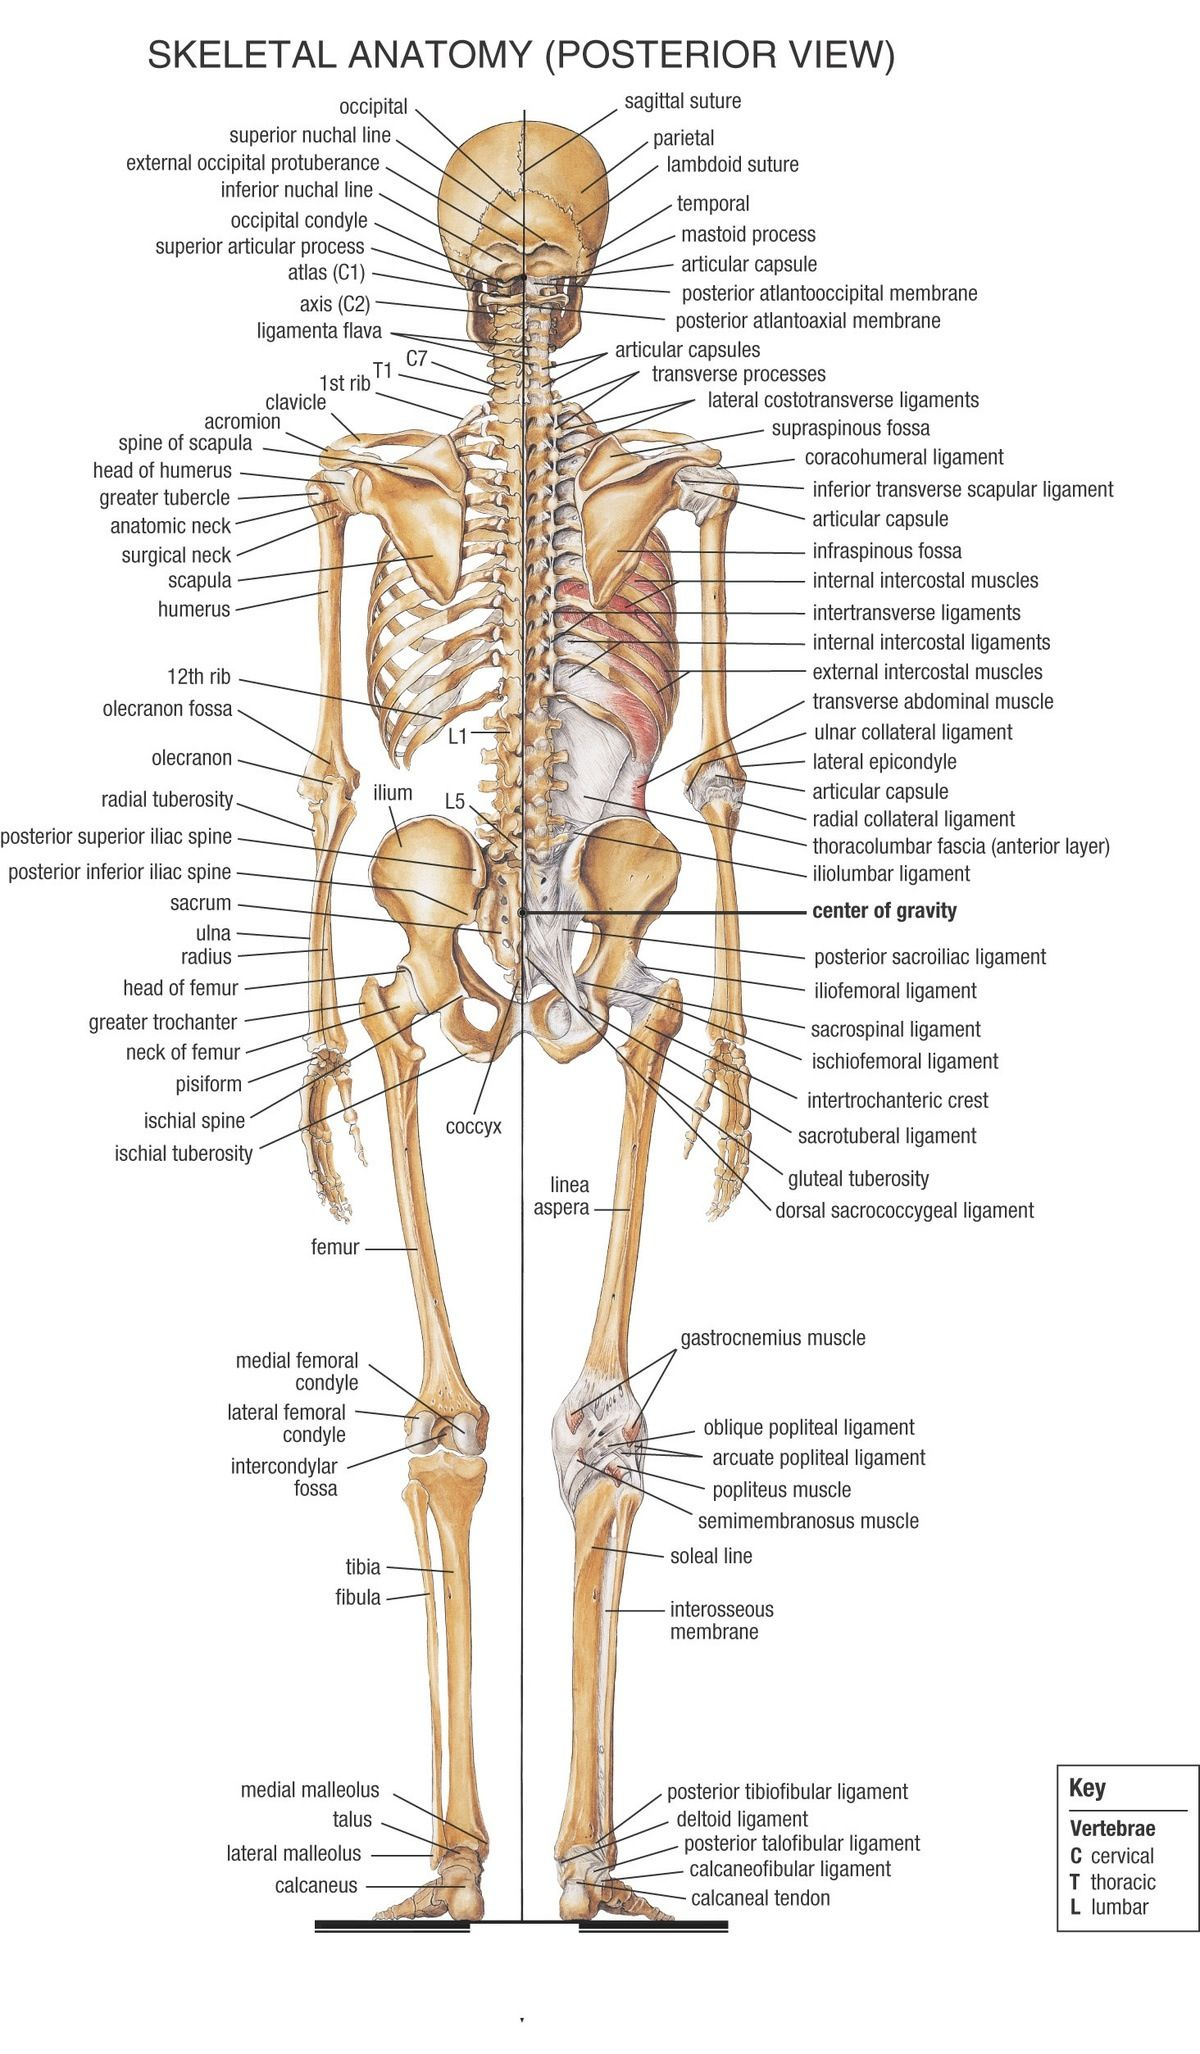 Skeletal Anatomy (Posterior) | EMS Study Material | Pinterest ...